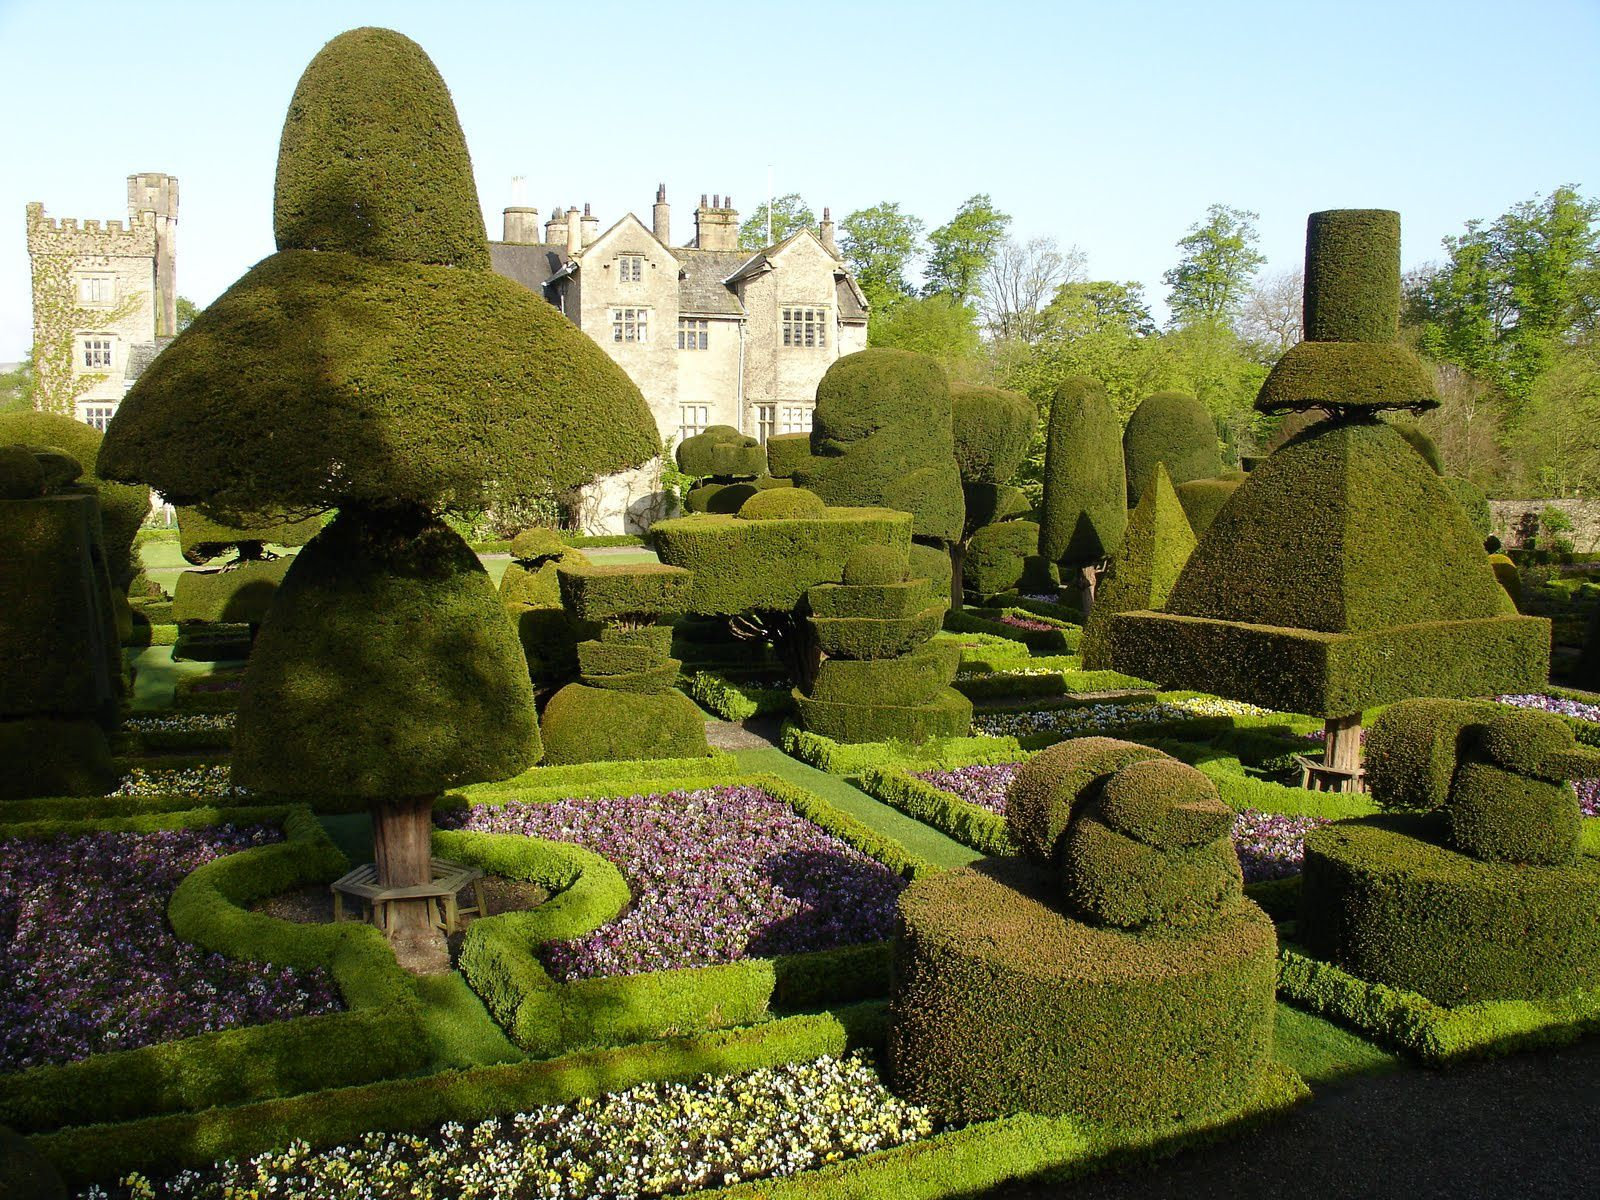 Levens Hall Garden, Cumbria, Northen England - Source: plume-escampette.com